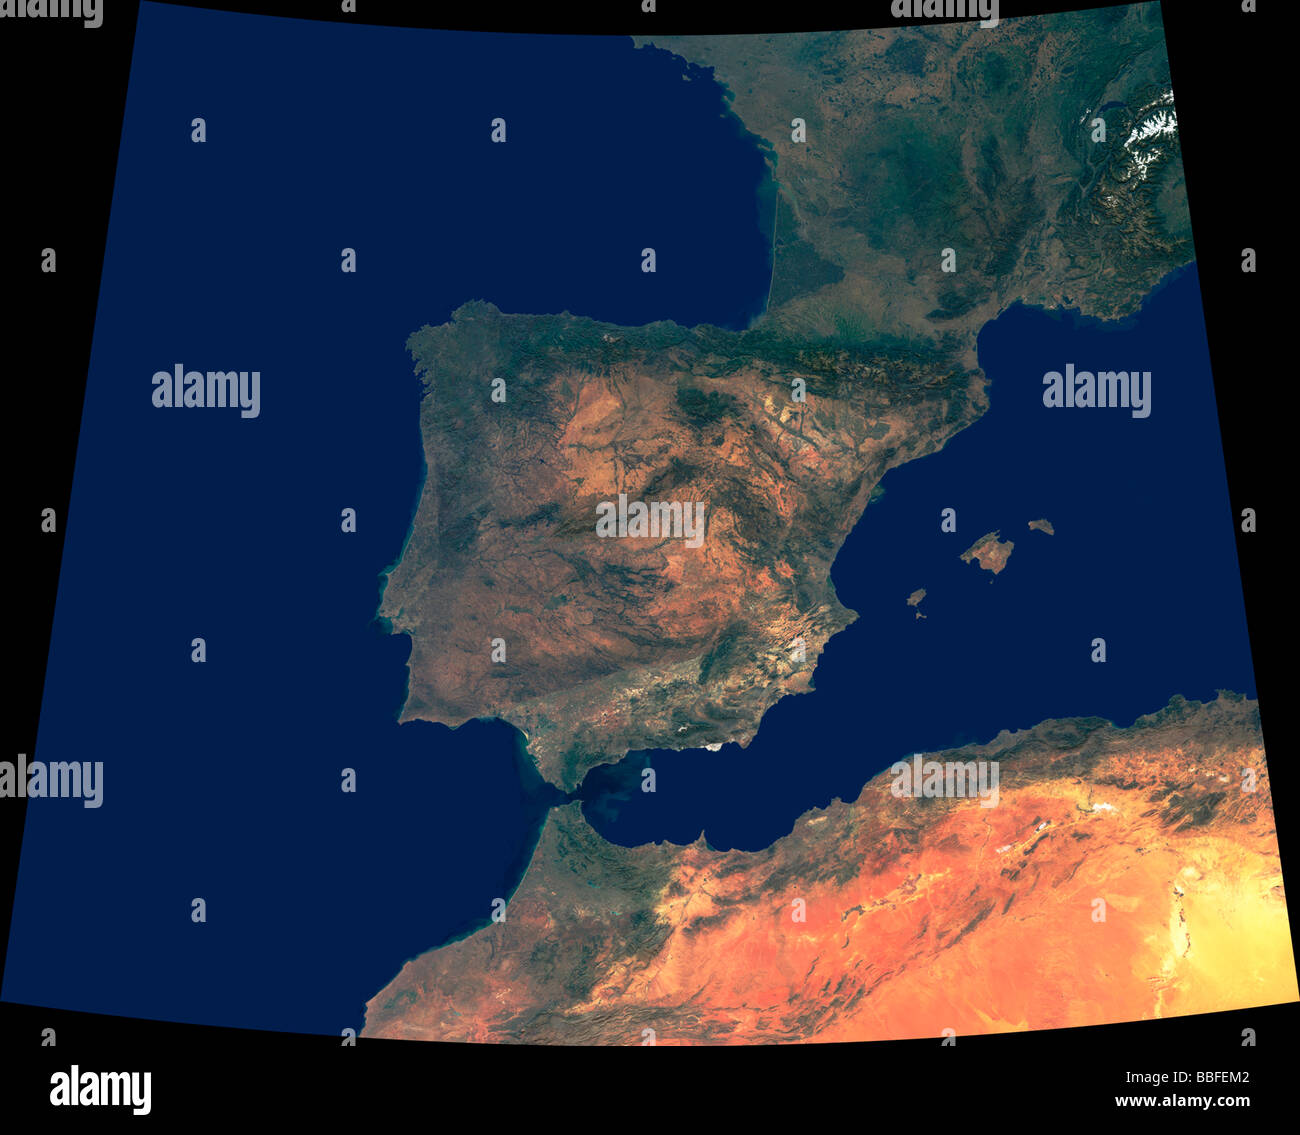 Satellite Map Of Spain.Computer Enhanced Satellite View Spain North Africa Stock Photo